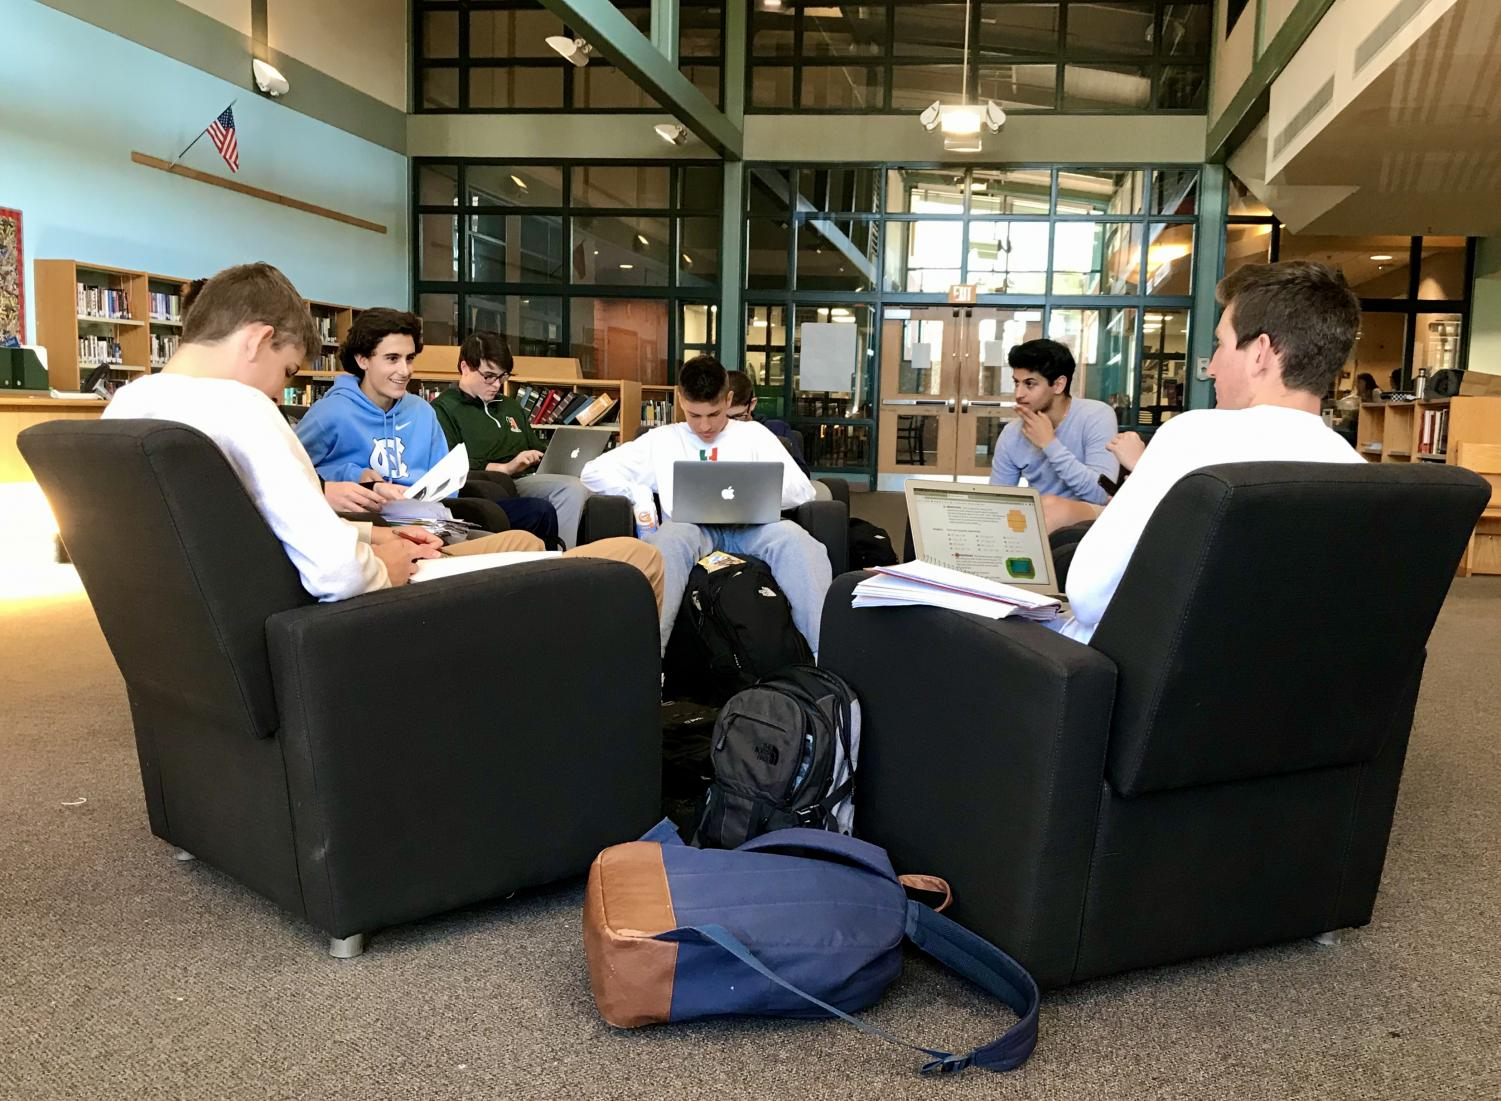 A group of students spend their Hiller Day time doing homework and conversing.